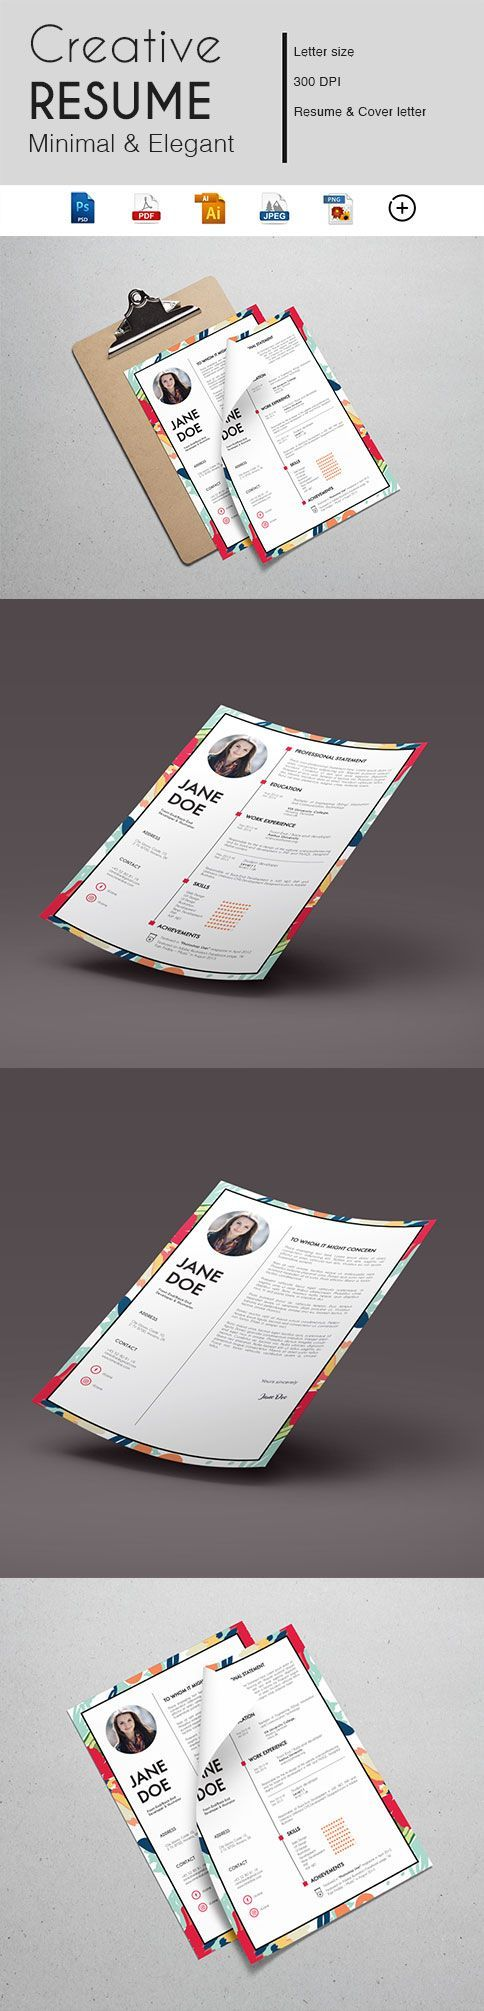 Ats Resume Template%0A Gabellare   Get into action and make a great first impression with our resume  template  During a job search  your resume plays a major role